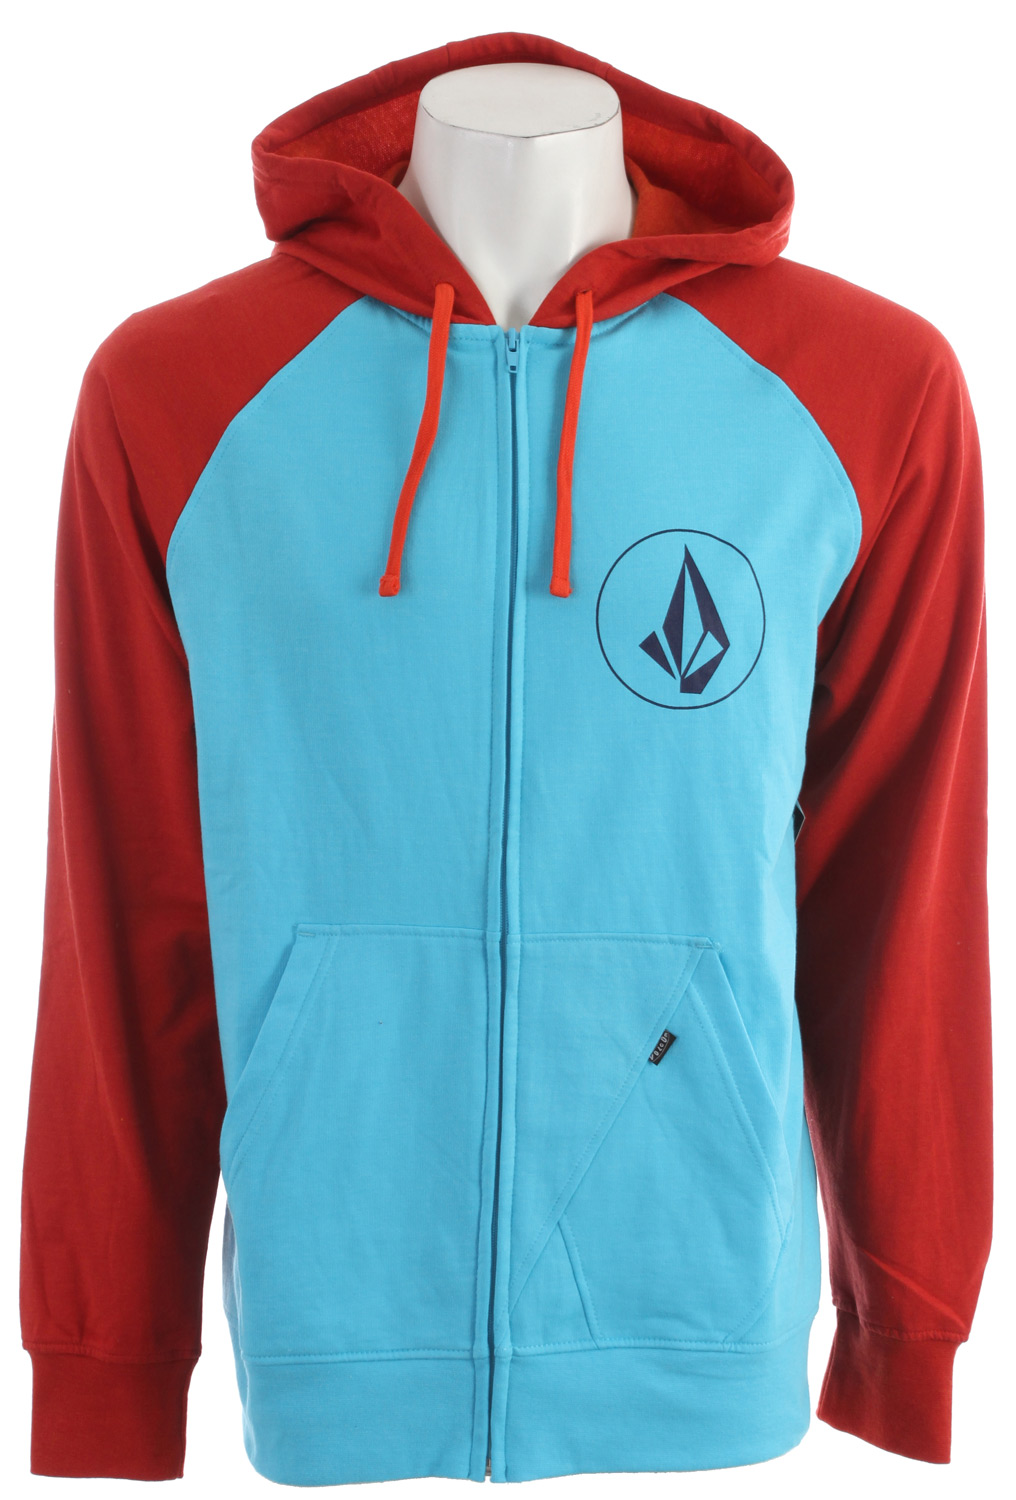 Surf Key Features of the Volcom Half Stone Icon Hoodie: Heather Slim zip hood Left chest screen print Contrast hood and raglan sleeves 2-Tone drawcords Stone panel pocket detail Pre-Shrunk Slim Fit 55% Cotton / 45% Polyester Heather fleece, 220-230gm - $35.95